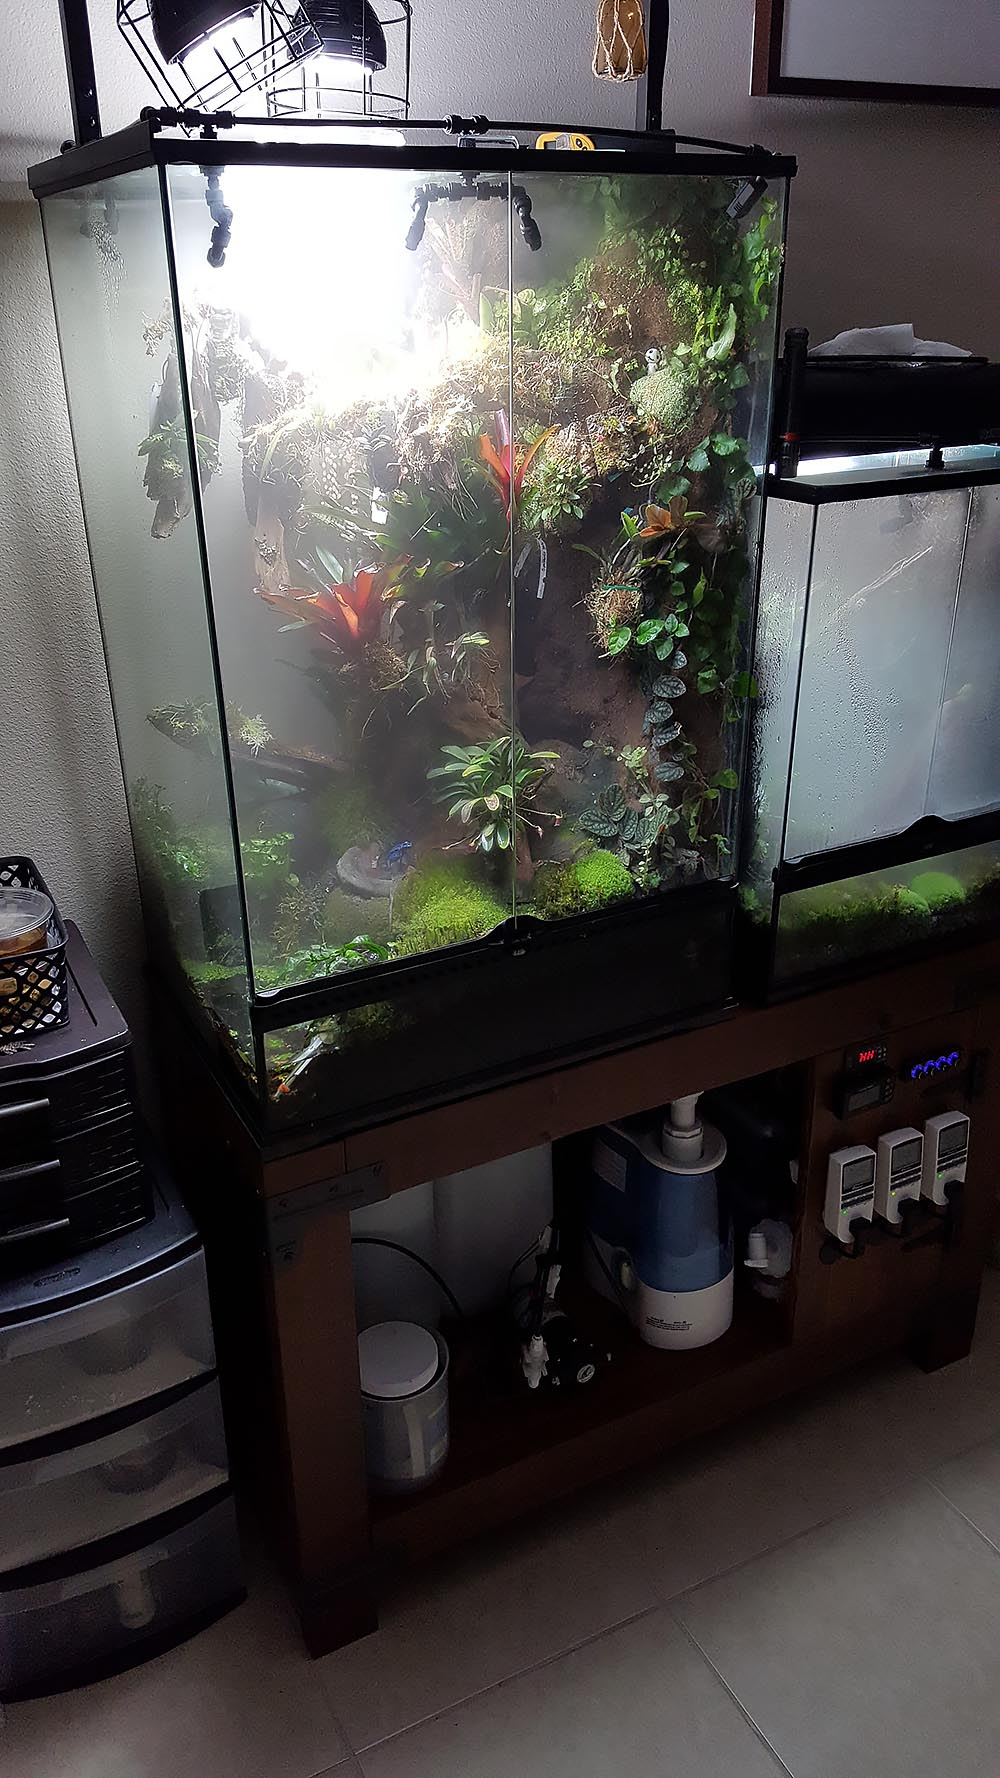 Shrouded in clouds: the main purpose of the cool-mist humidifiers is actually to cool the internal temperatures of the vivariums. Note the mister, humidifier, and various monitors and controls below the vivariums.